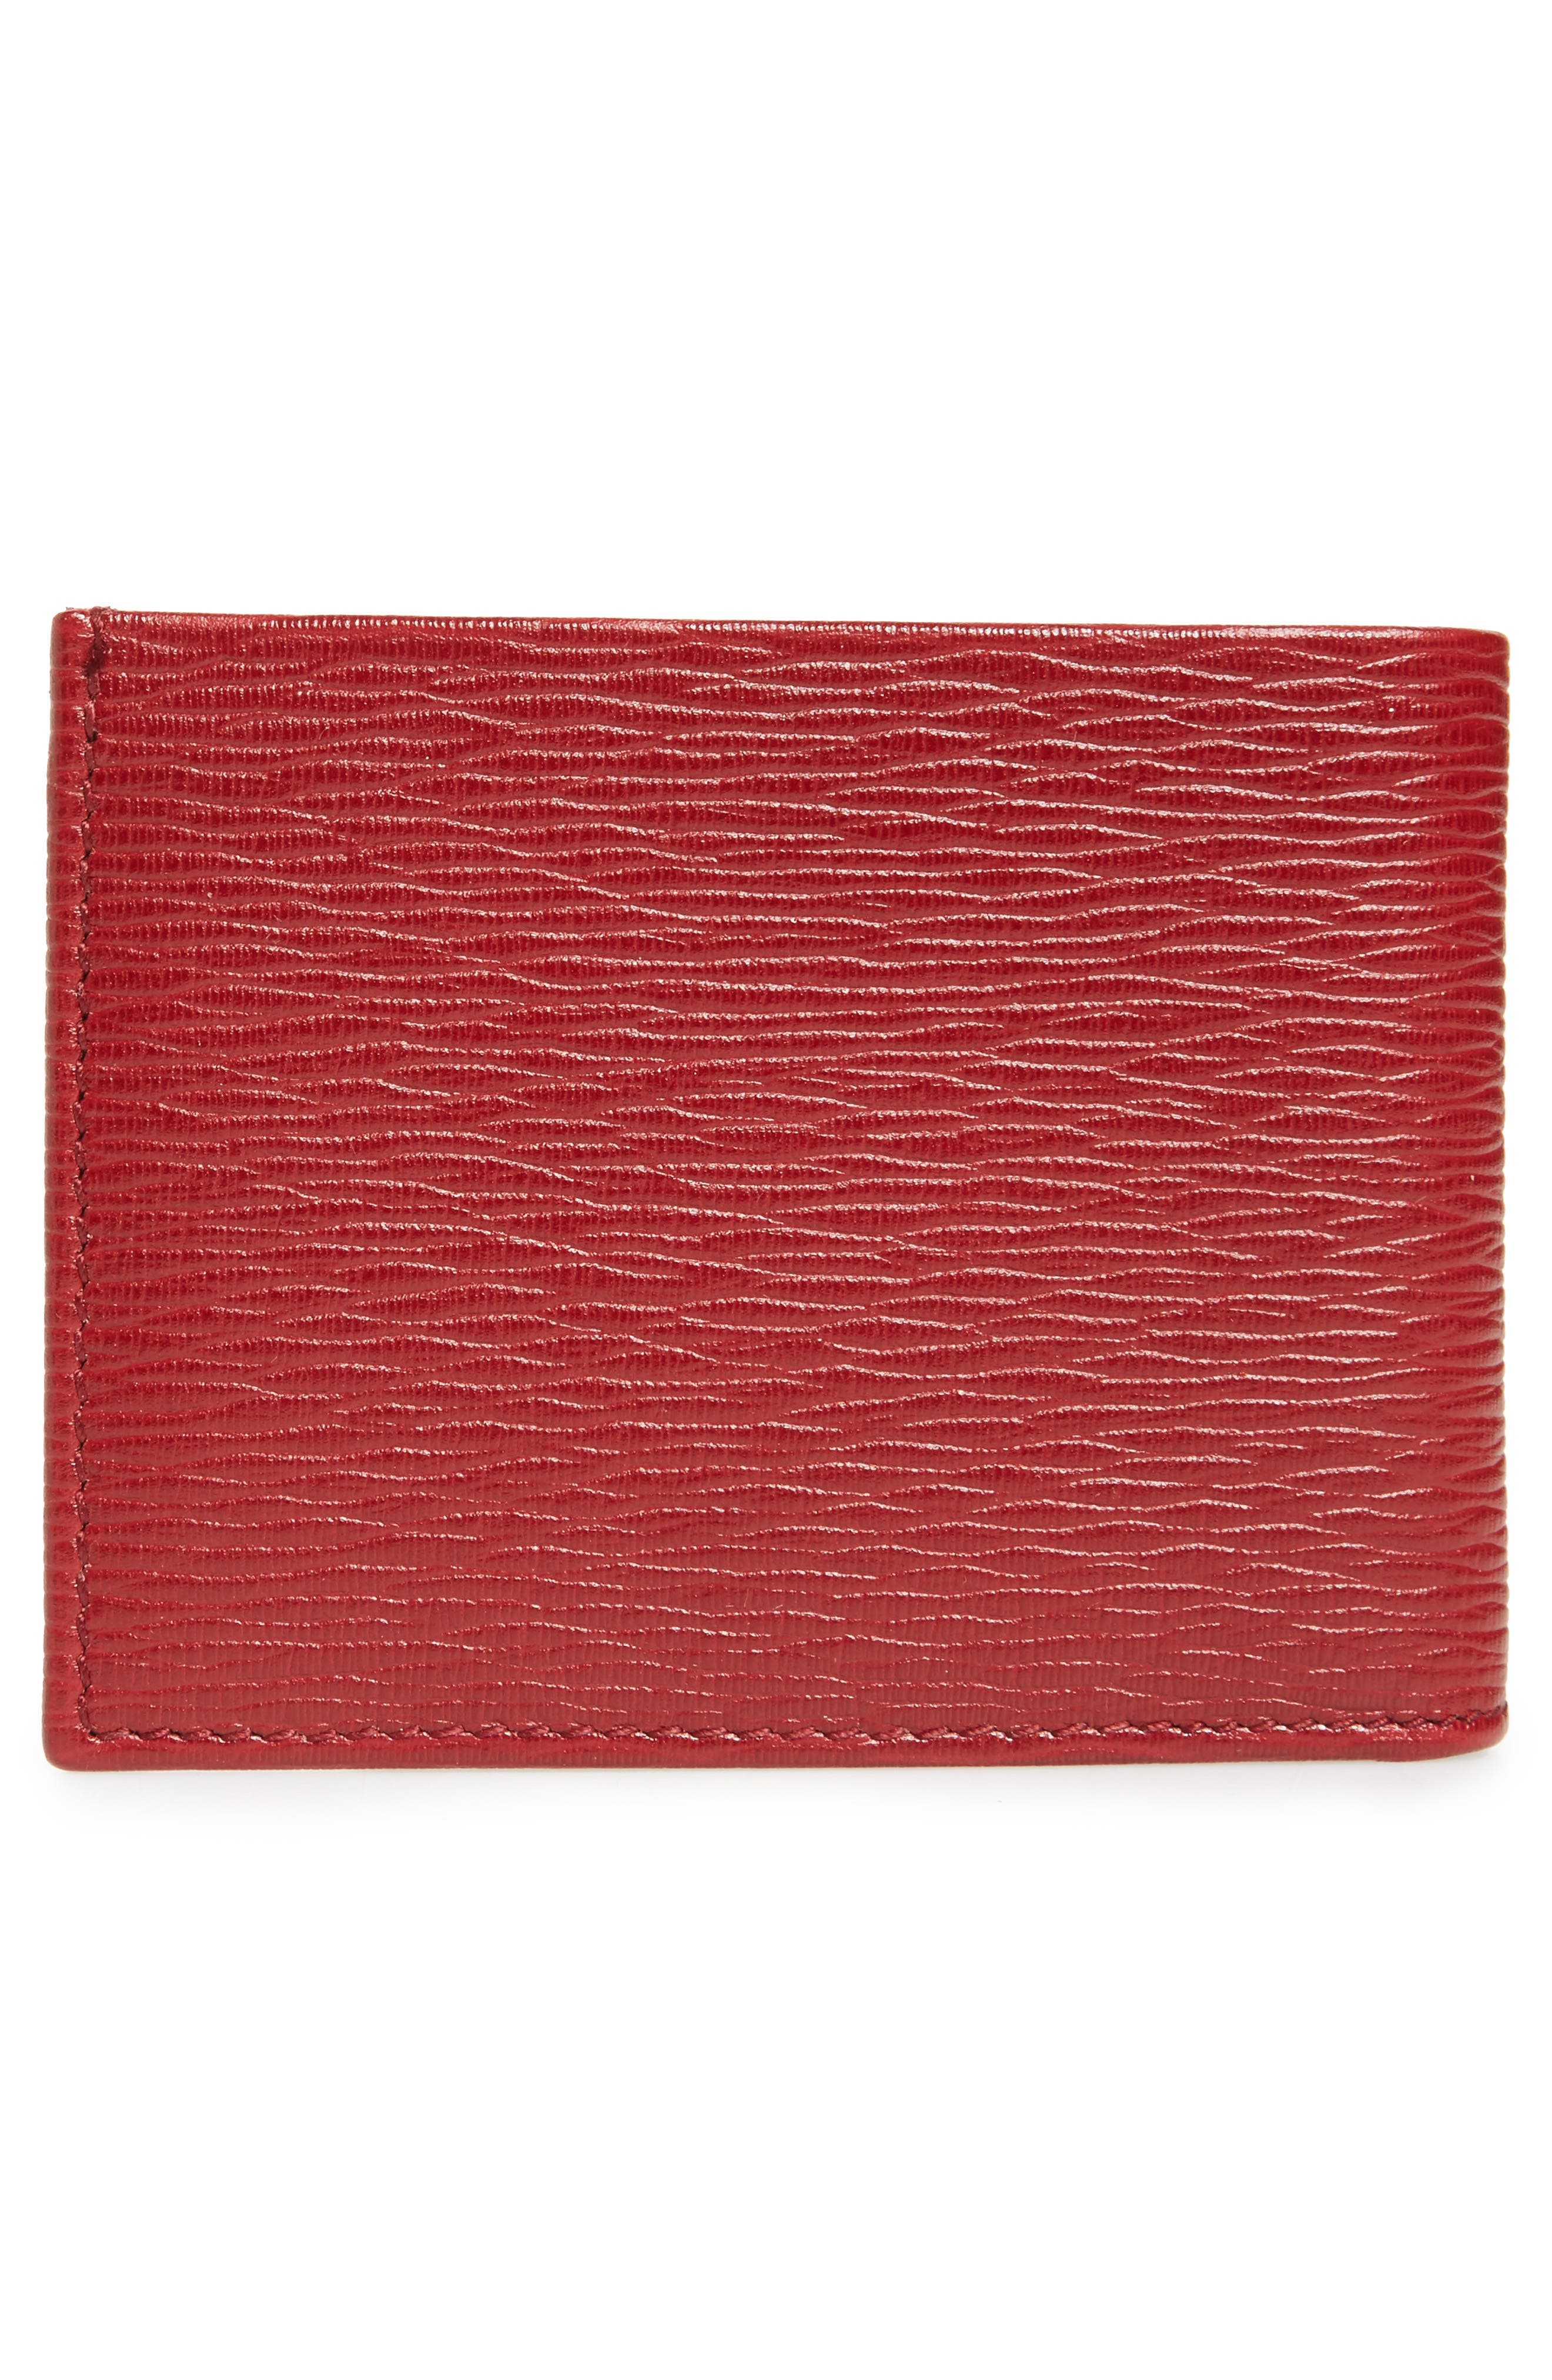 Revival Bifold Leather Wallet,                             Alternate thumbnail 3, color,                             Red